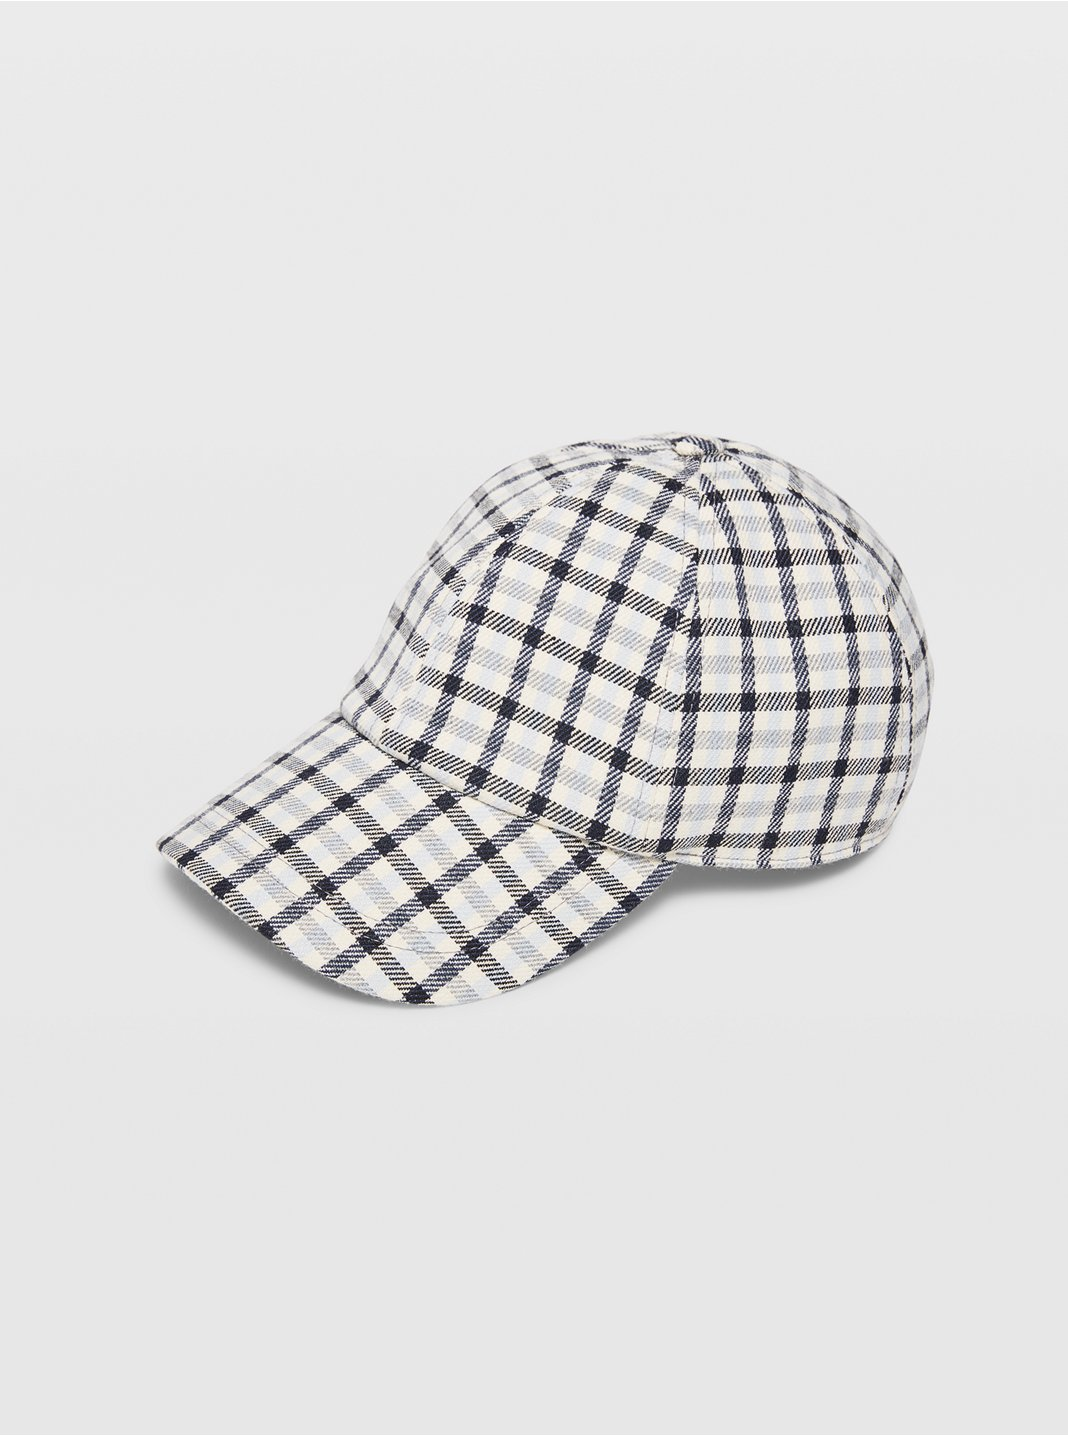 Hat Attack Plaid Baseball Cap